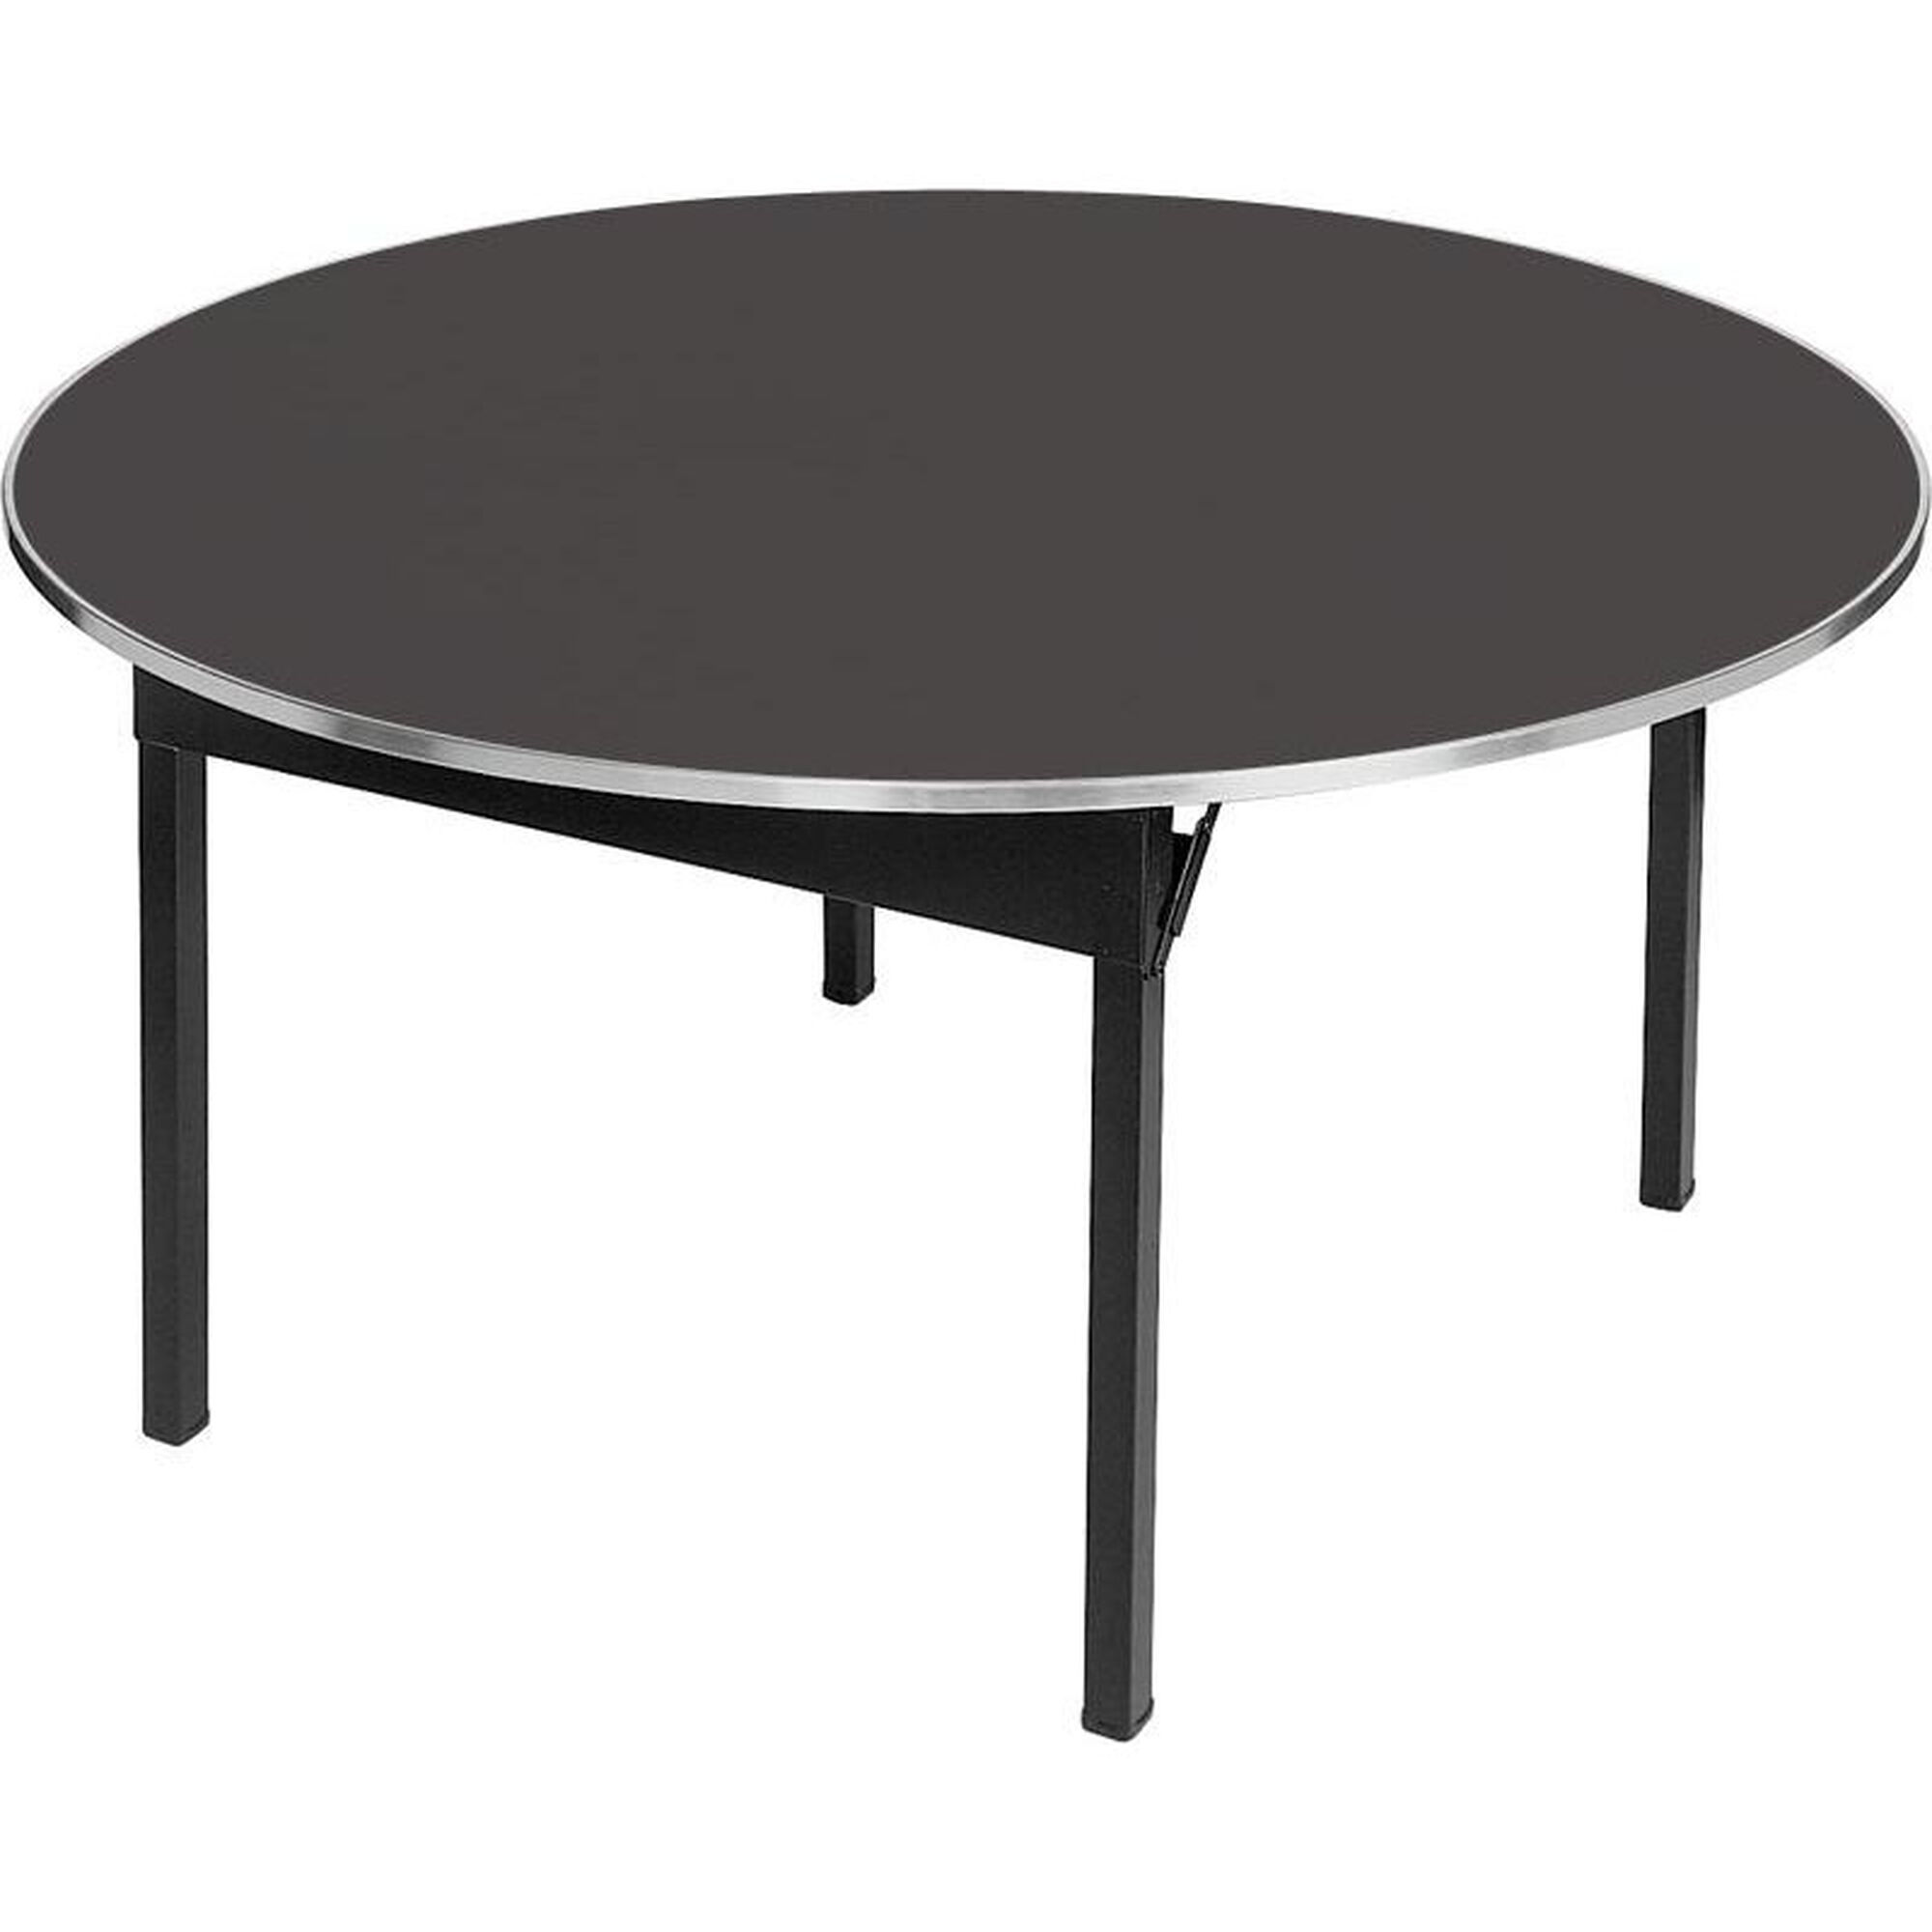 Round Table Seating Capacity Laminate Round Banquet Table Dlorig48rd